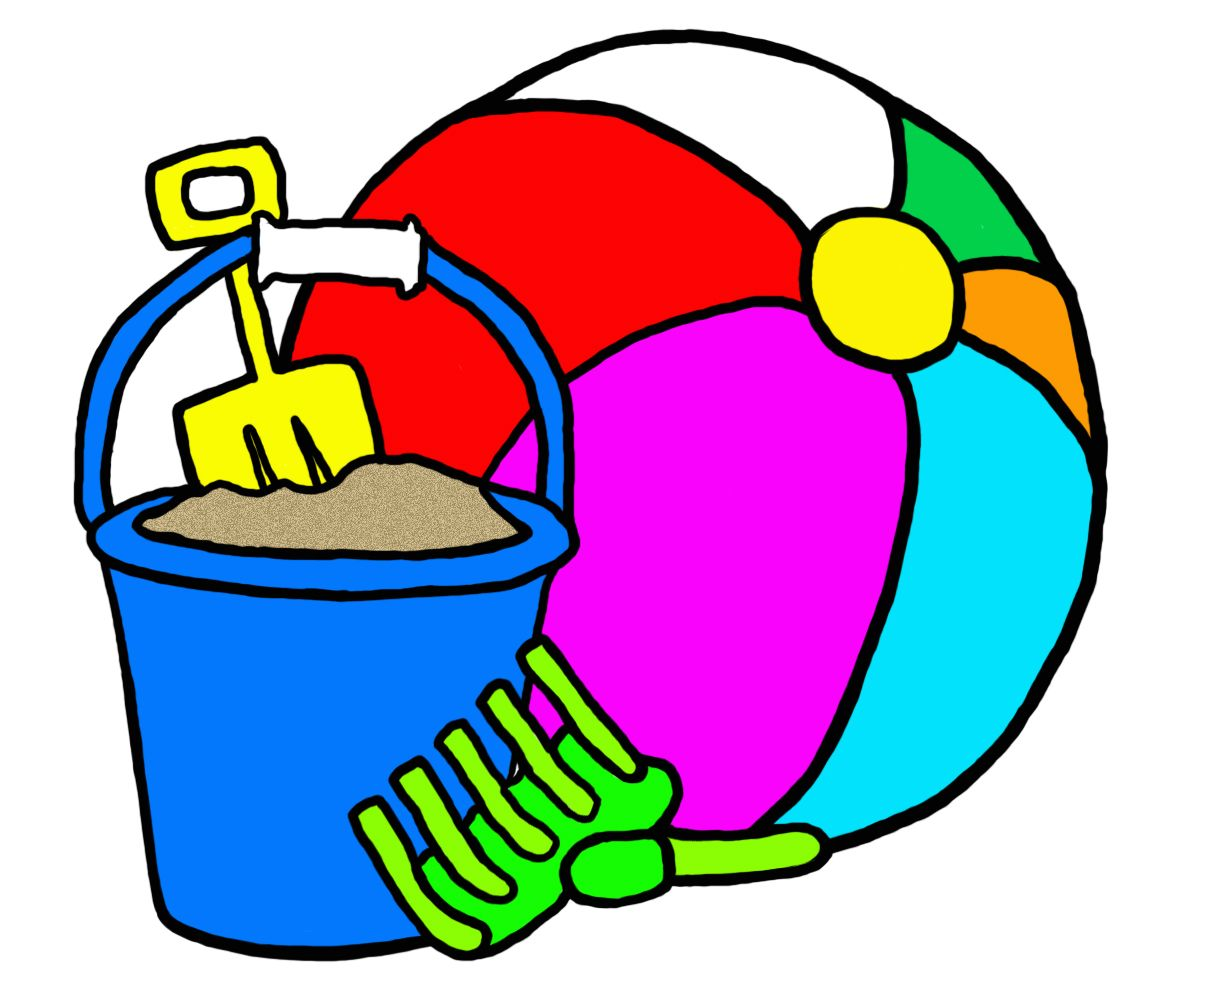 Beachball clipart summer. August google search decorations